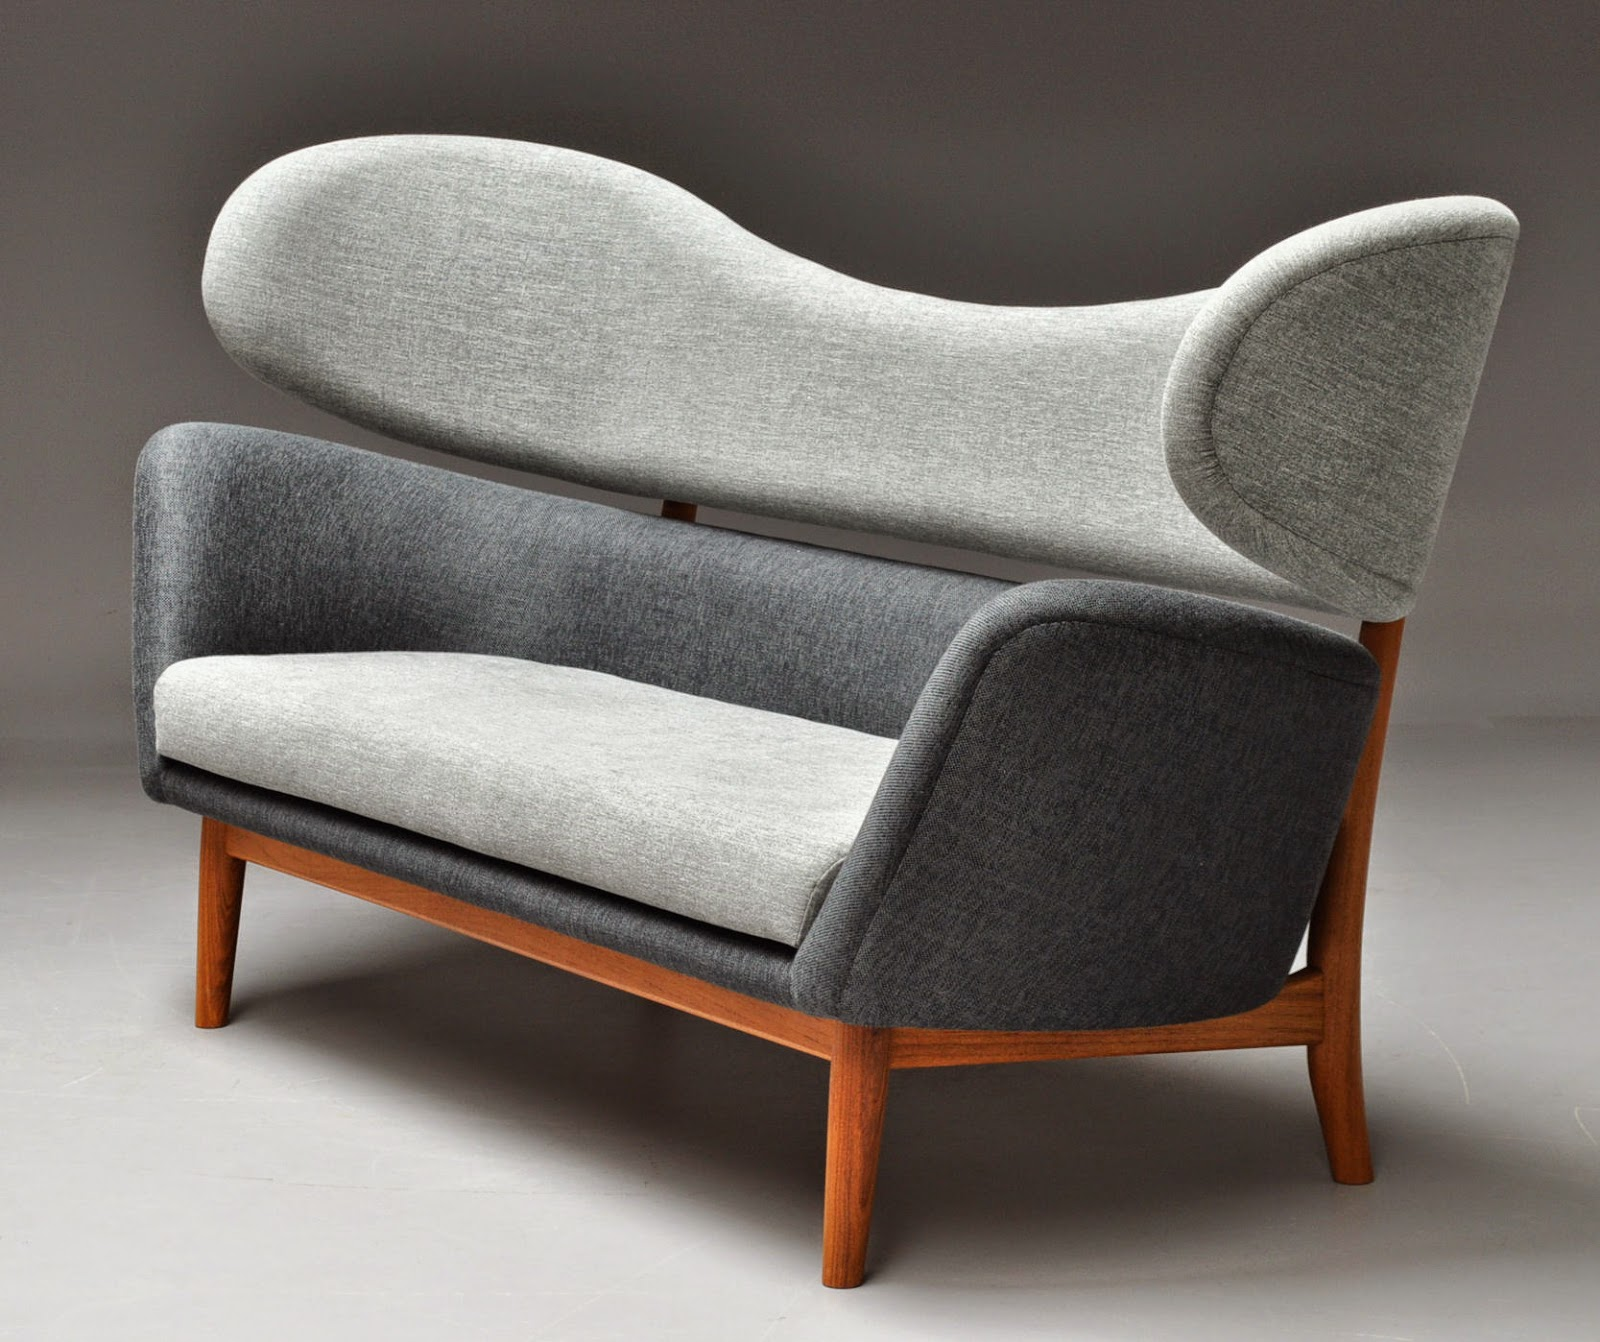 Baker Sofa: Sharp Lines Old Times: For The Love Of Curves